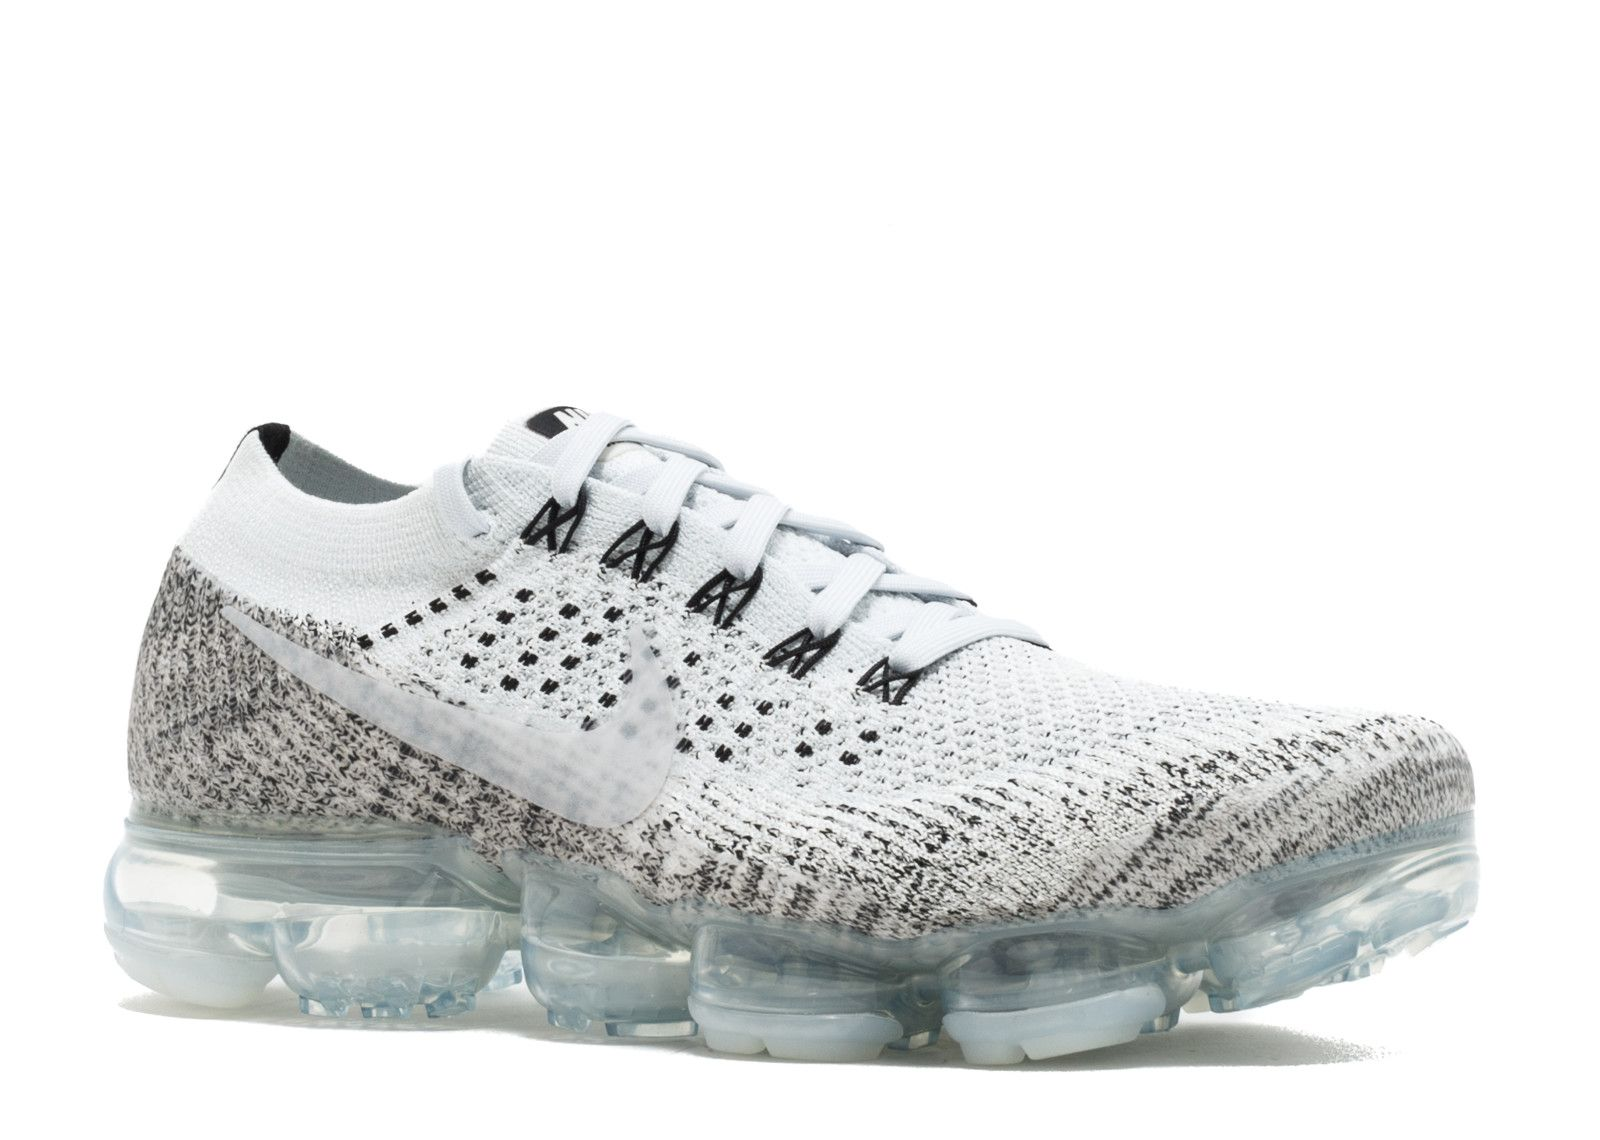 reputable site 1cefa 437cd 2018 Spring Summer Men Air Vapormax Vapor Max Flyknit Oreo Pale Grey Sail   Nike  Air VaporMax   Pinterest   Summer men, Spring summer and Gray